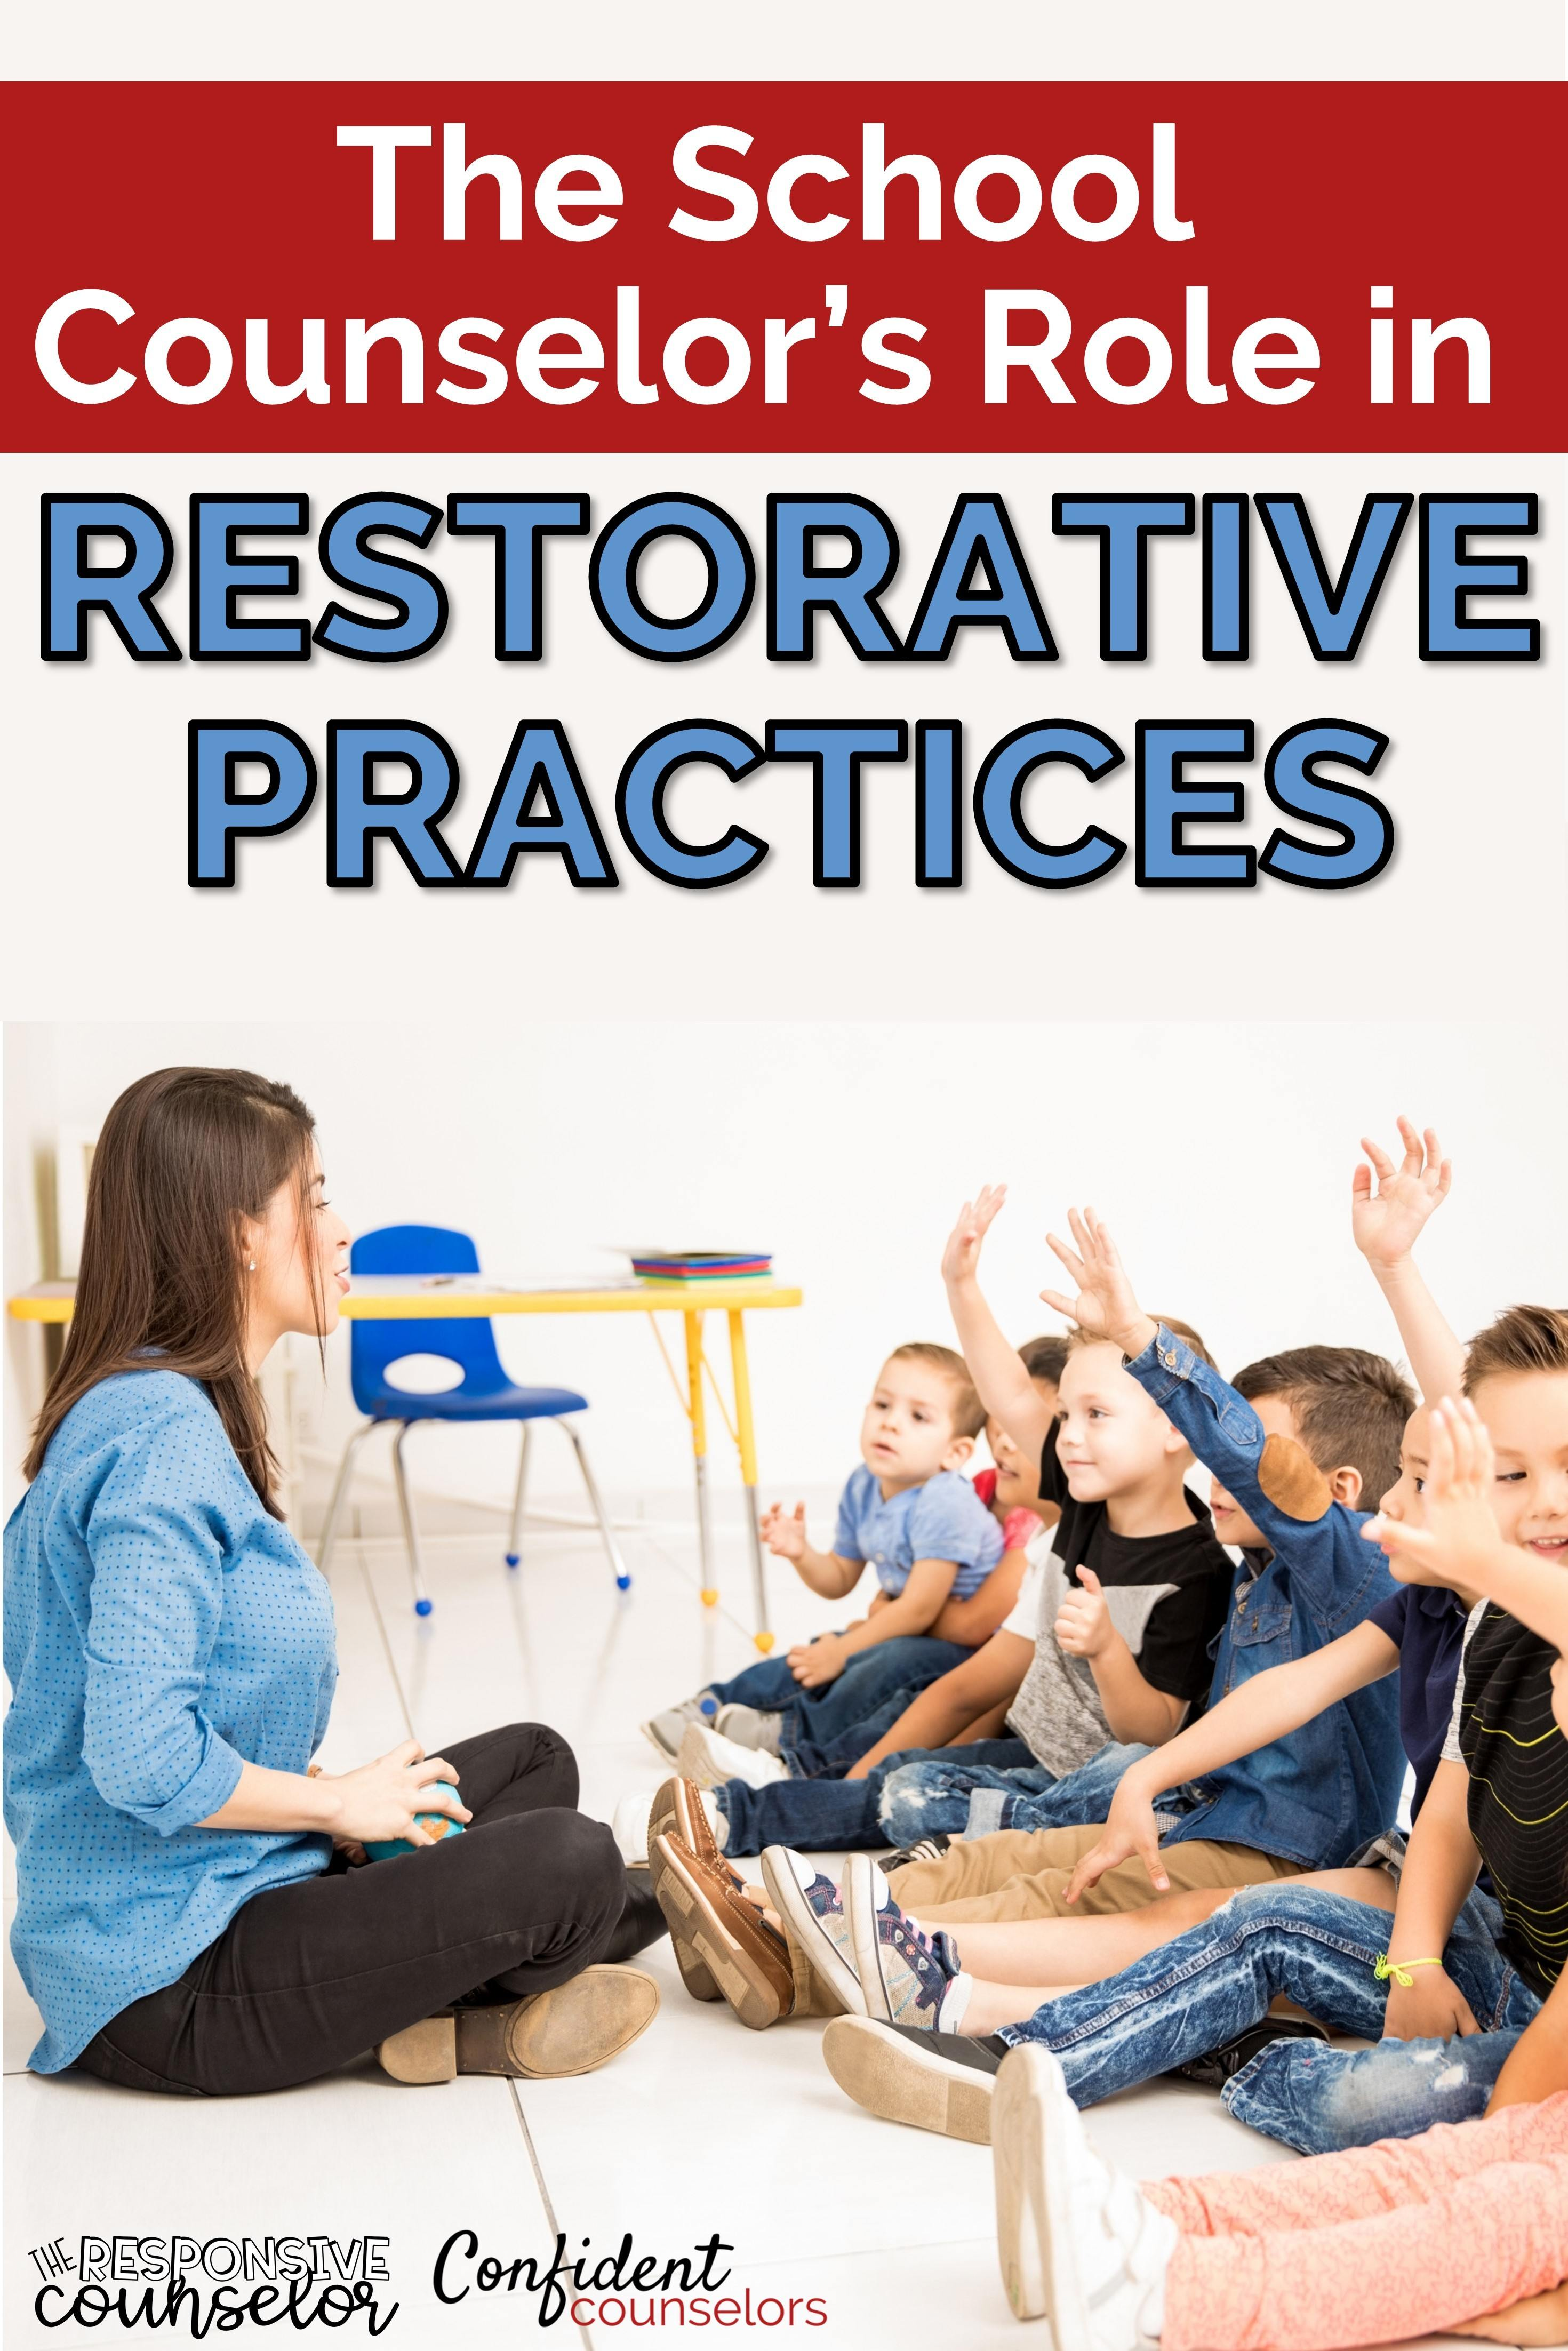 the school counselor's role in restorative practices